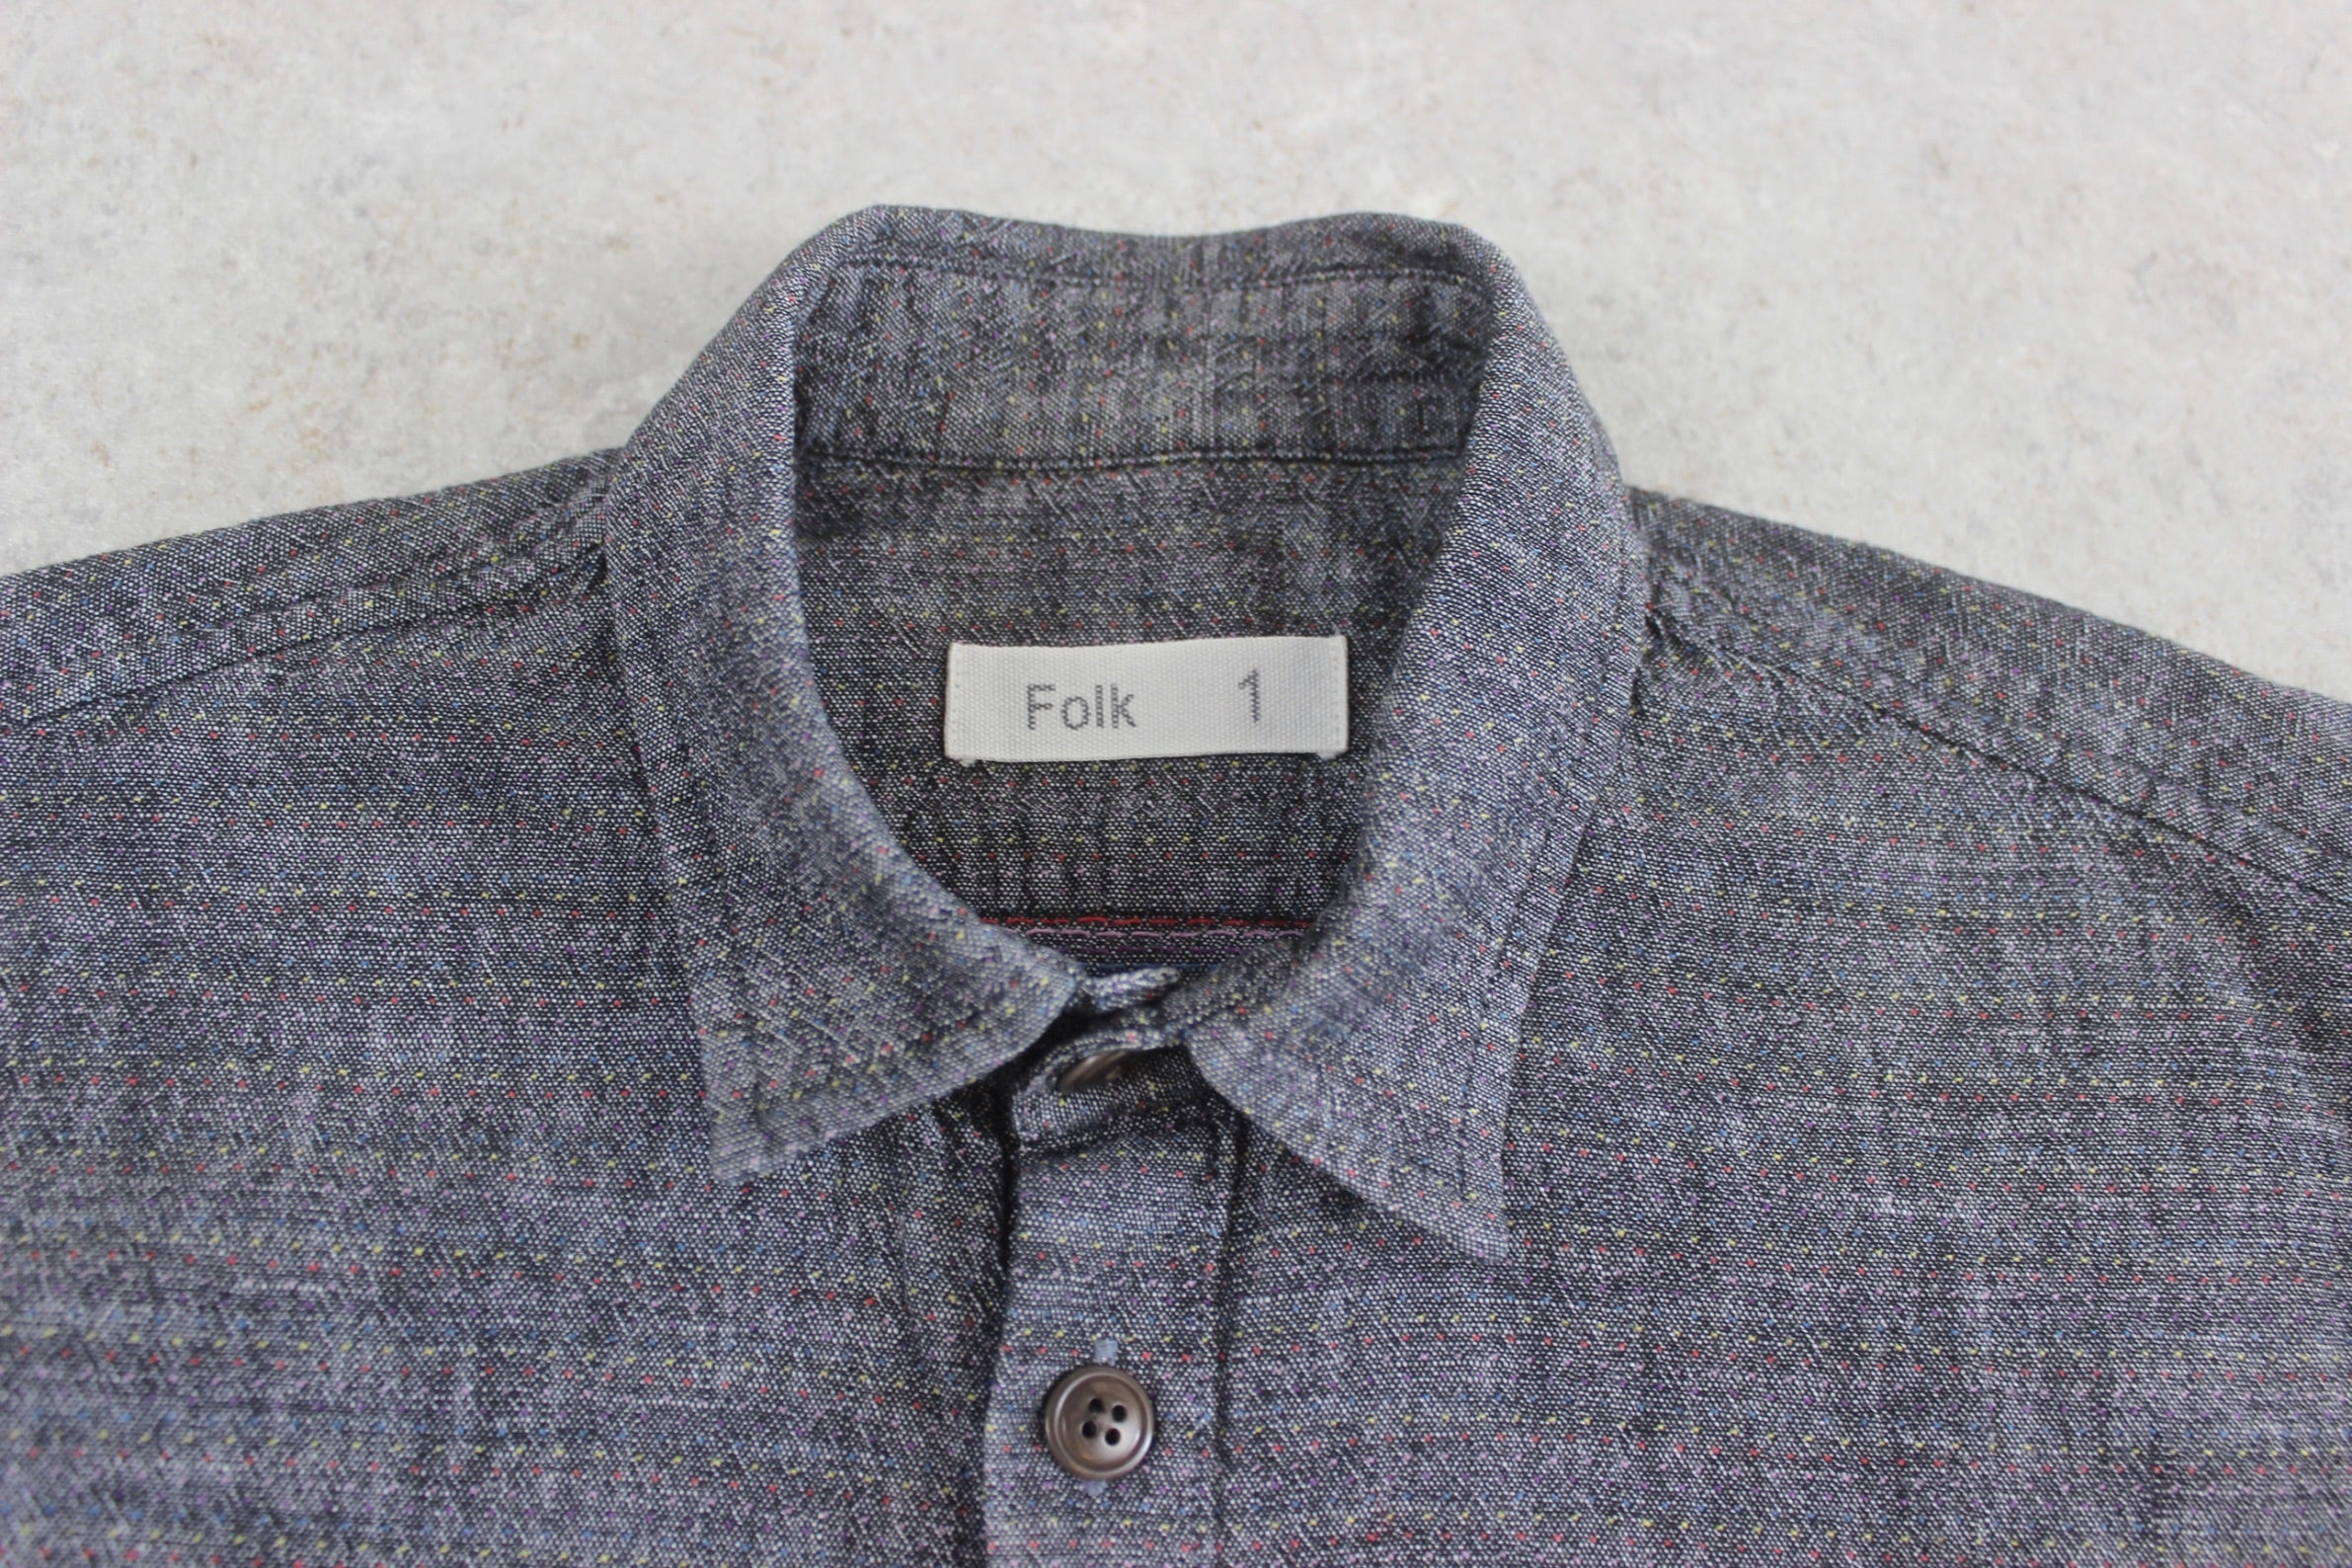 Folk - Shirt - Grey/Multi Colour - 1/Extra Small